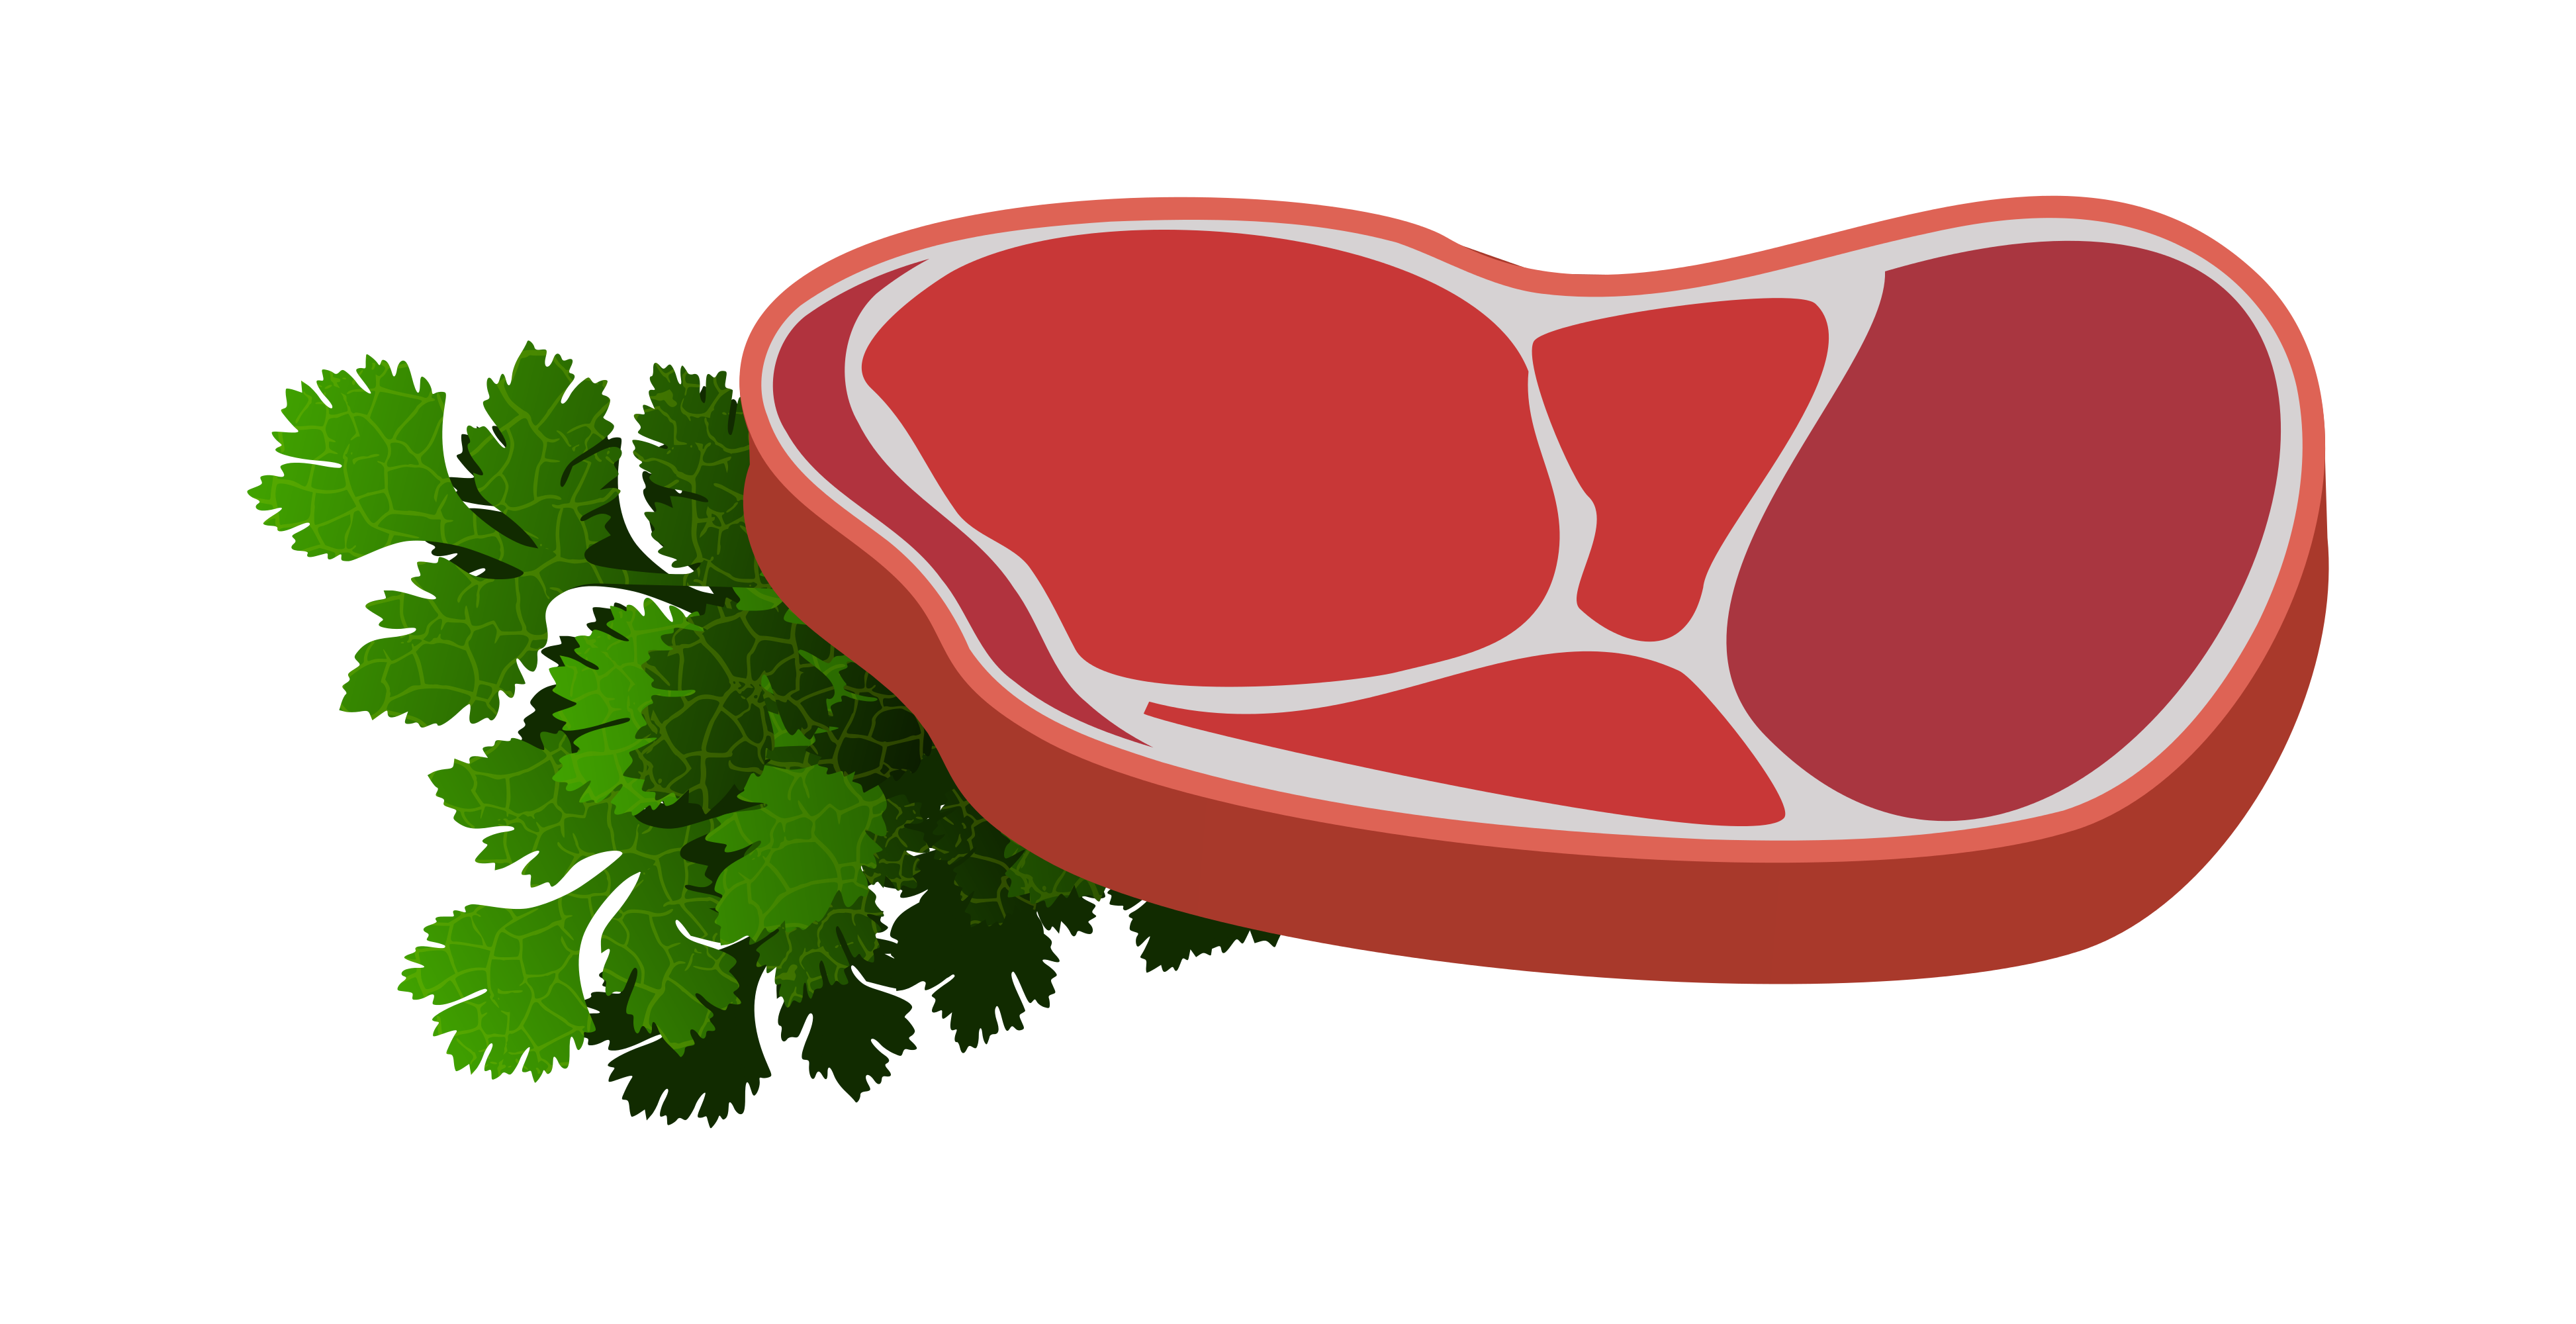 Printable images of meat and food clipart svg black and white library Raw Steak clipart 3892x2000 | Clipart Everyday Foods | No ... svg black and white library